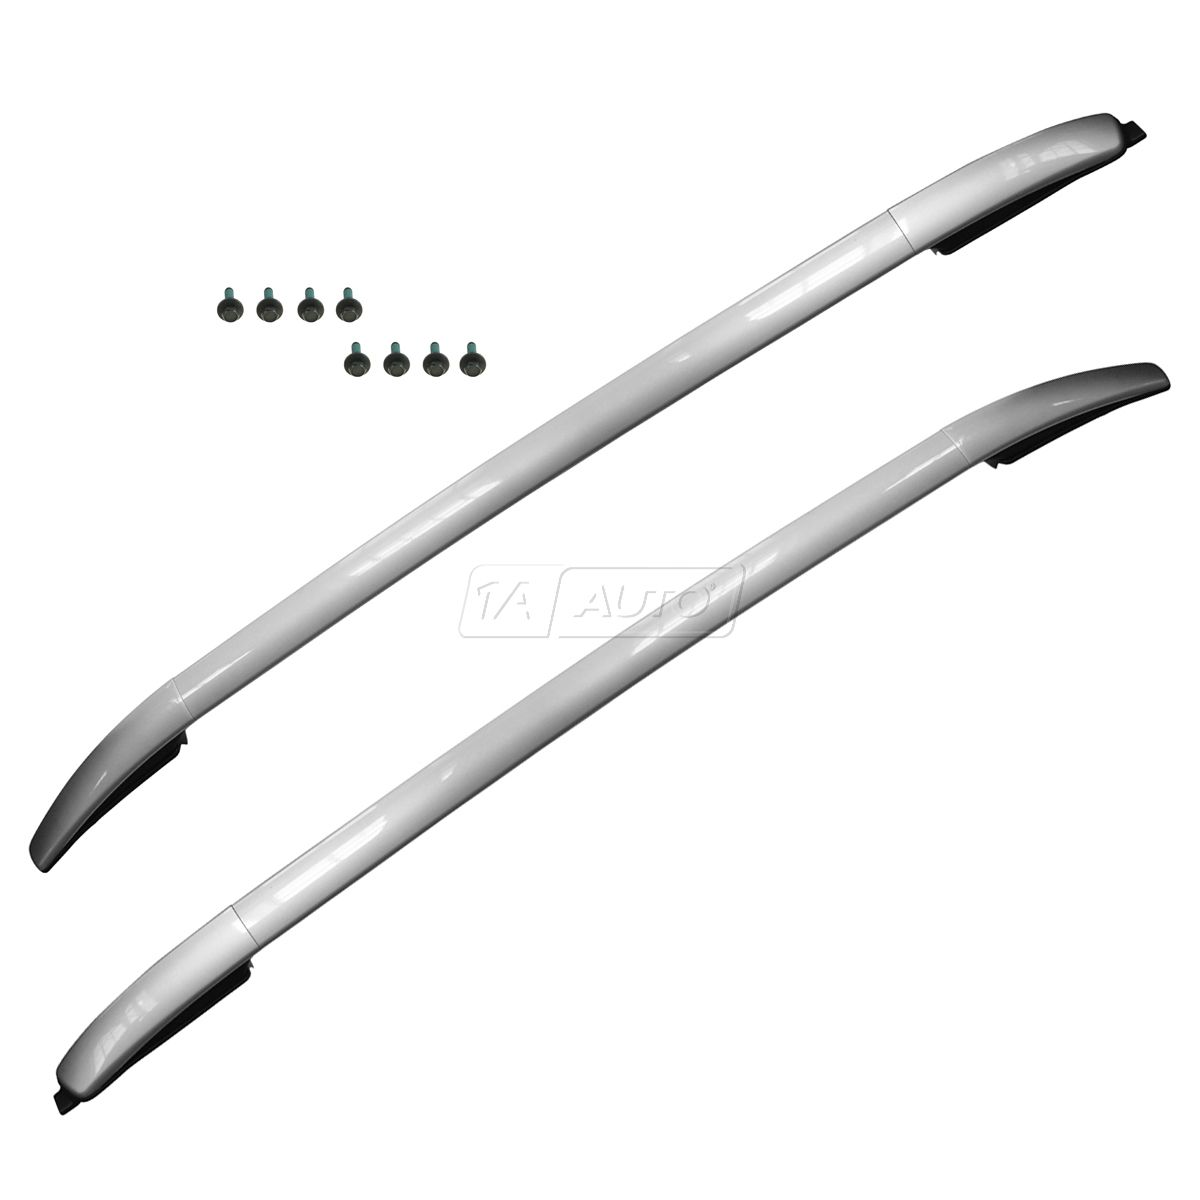 Oem Roof Rack Side Rail Pair Set For 13 15 Mazda Cx 5 Cx5